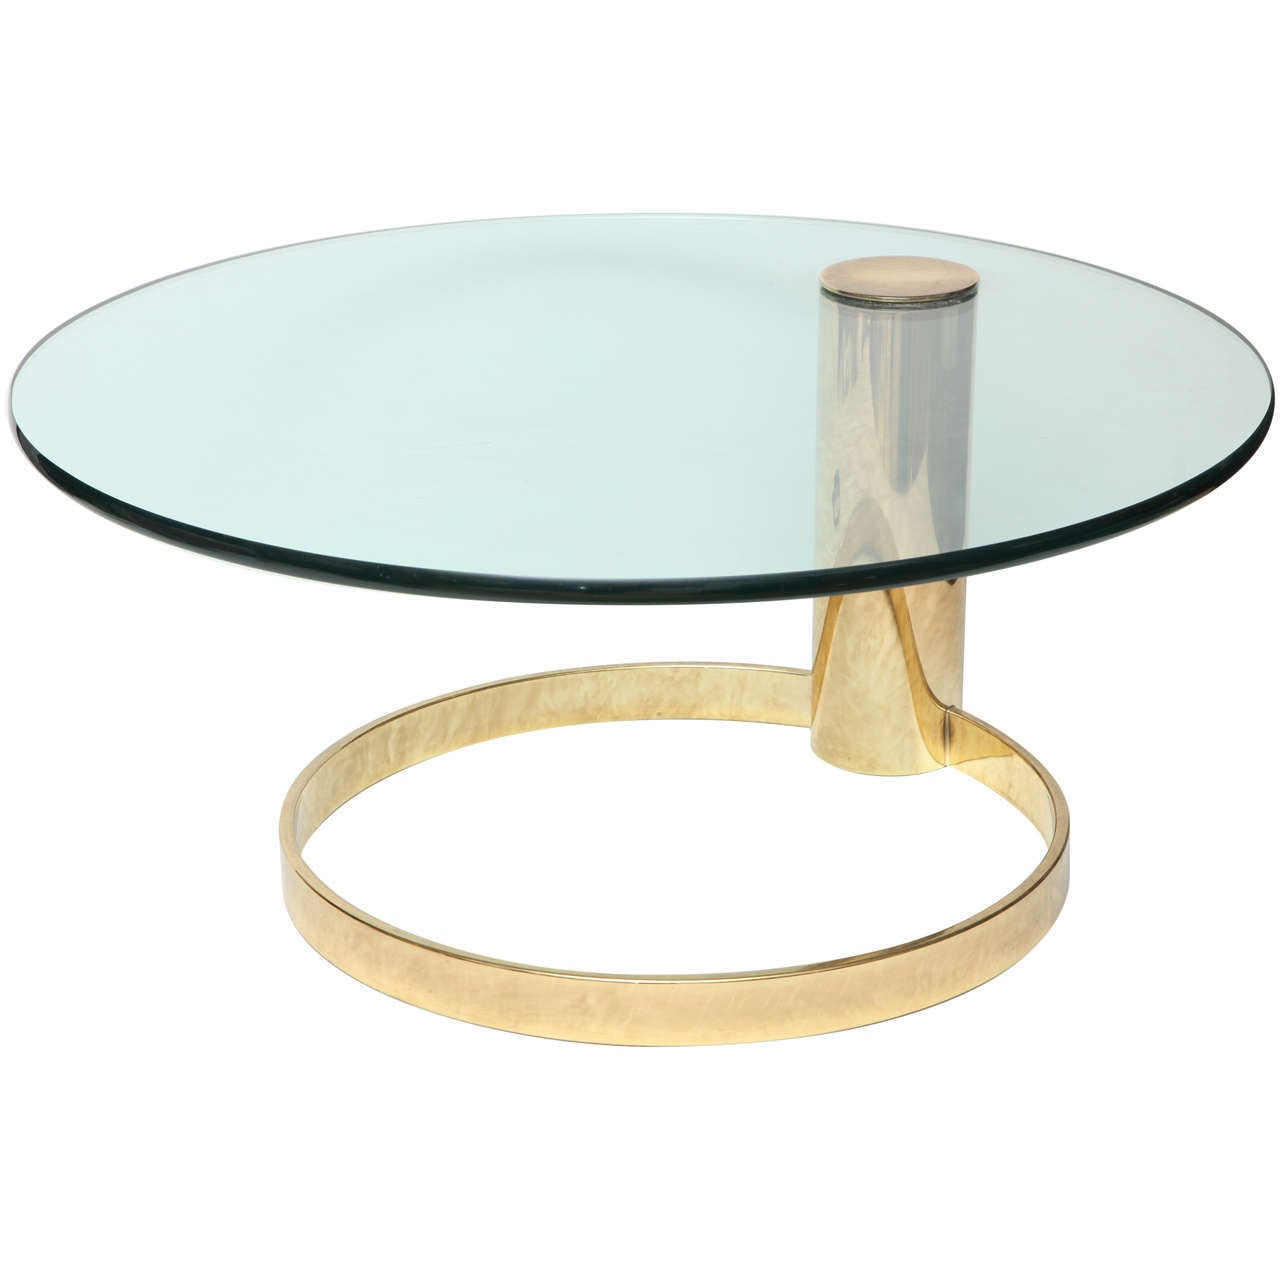 this lucite waterfall coffee table is no longer available